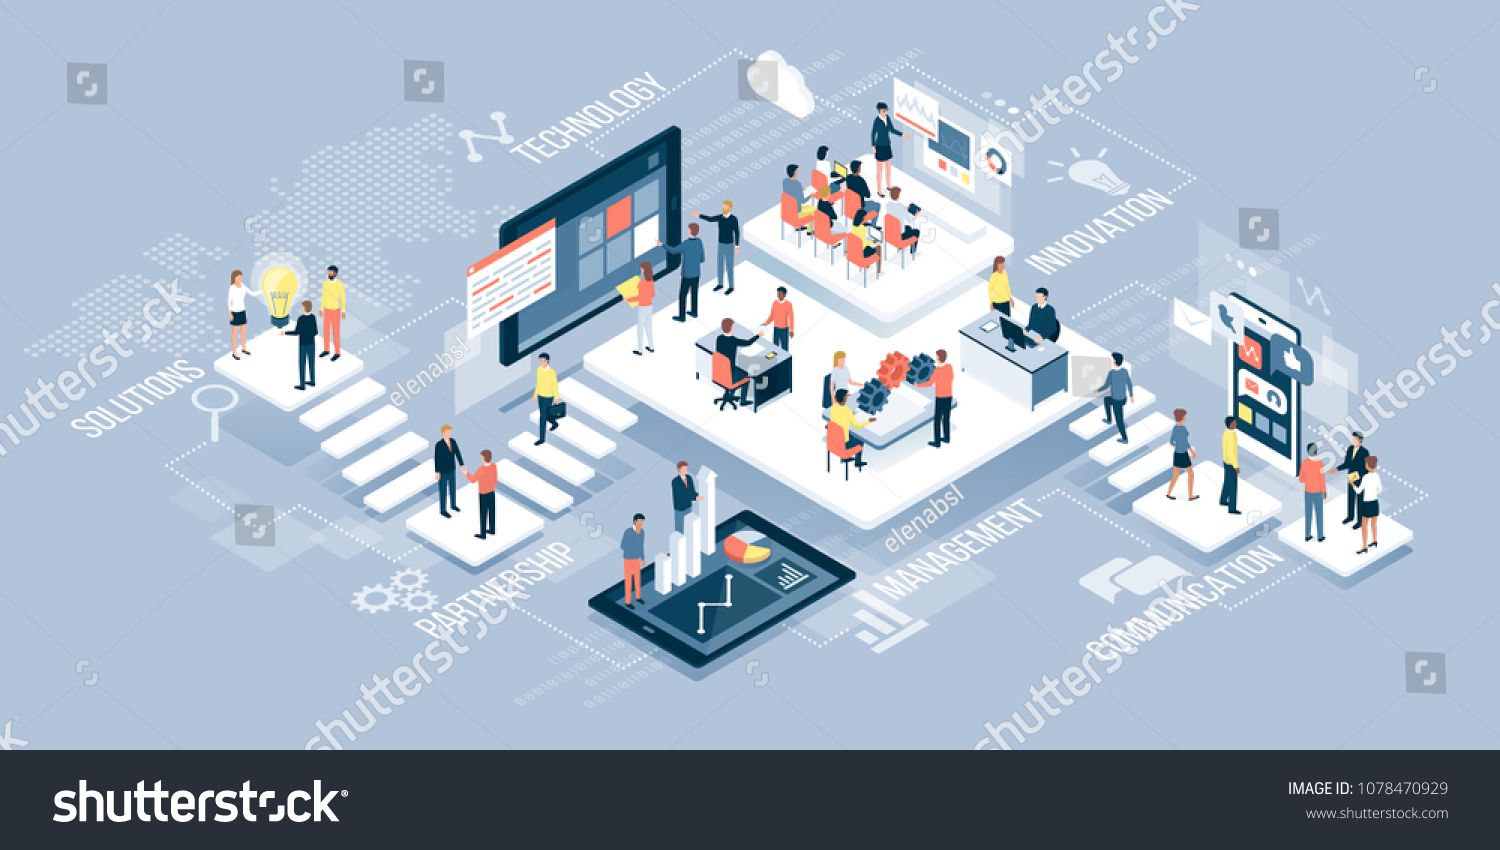 Isometric virtual office with business people working